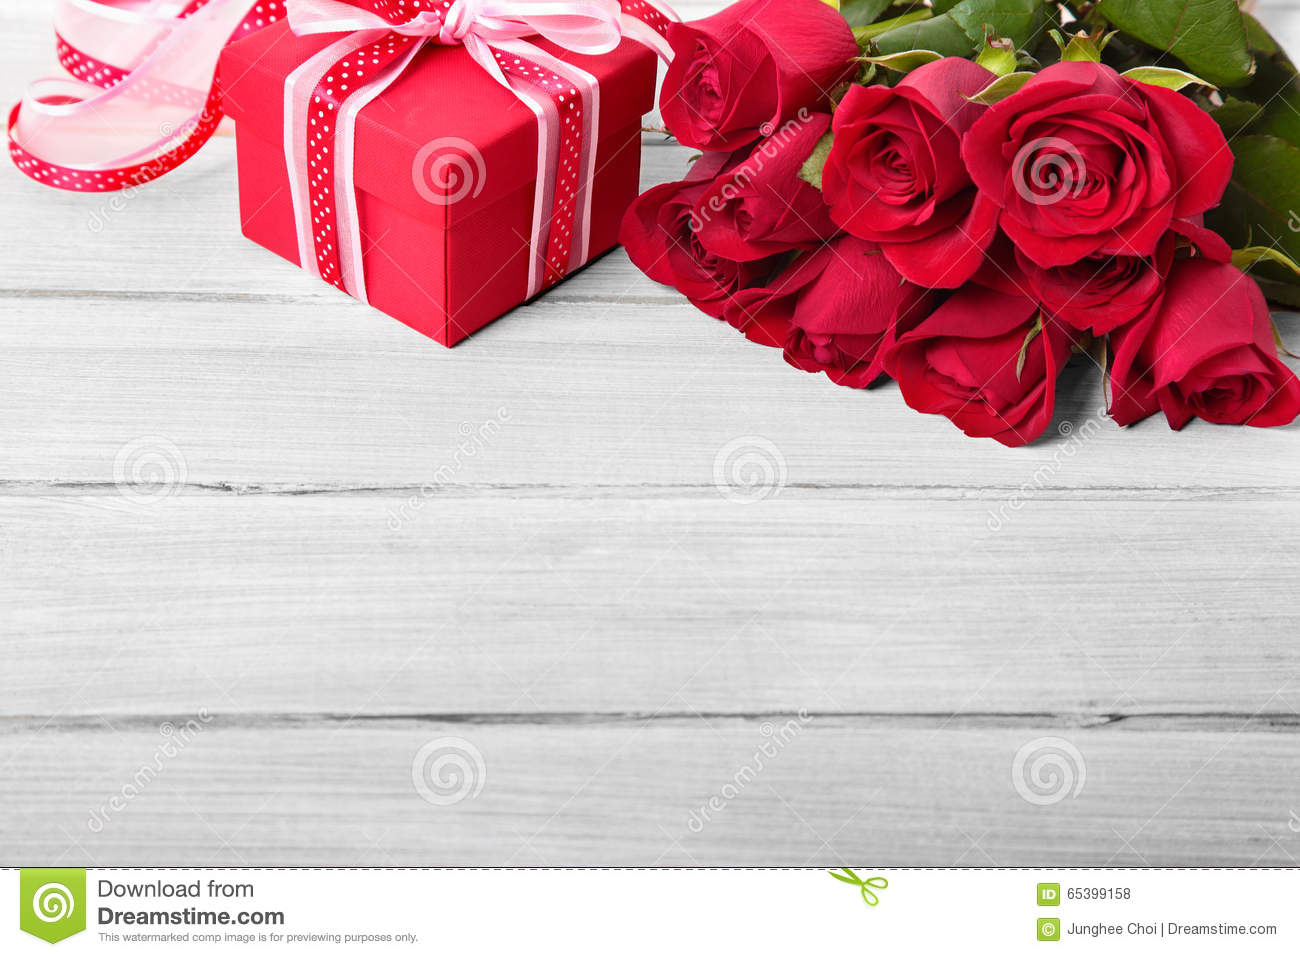 Valentine Roses And Gift Box On White Wood Copy Space Stock Photo